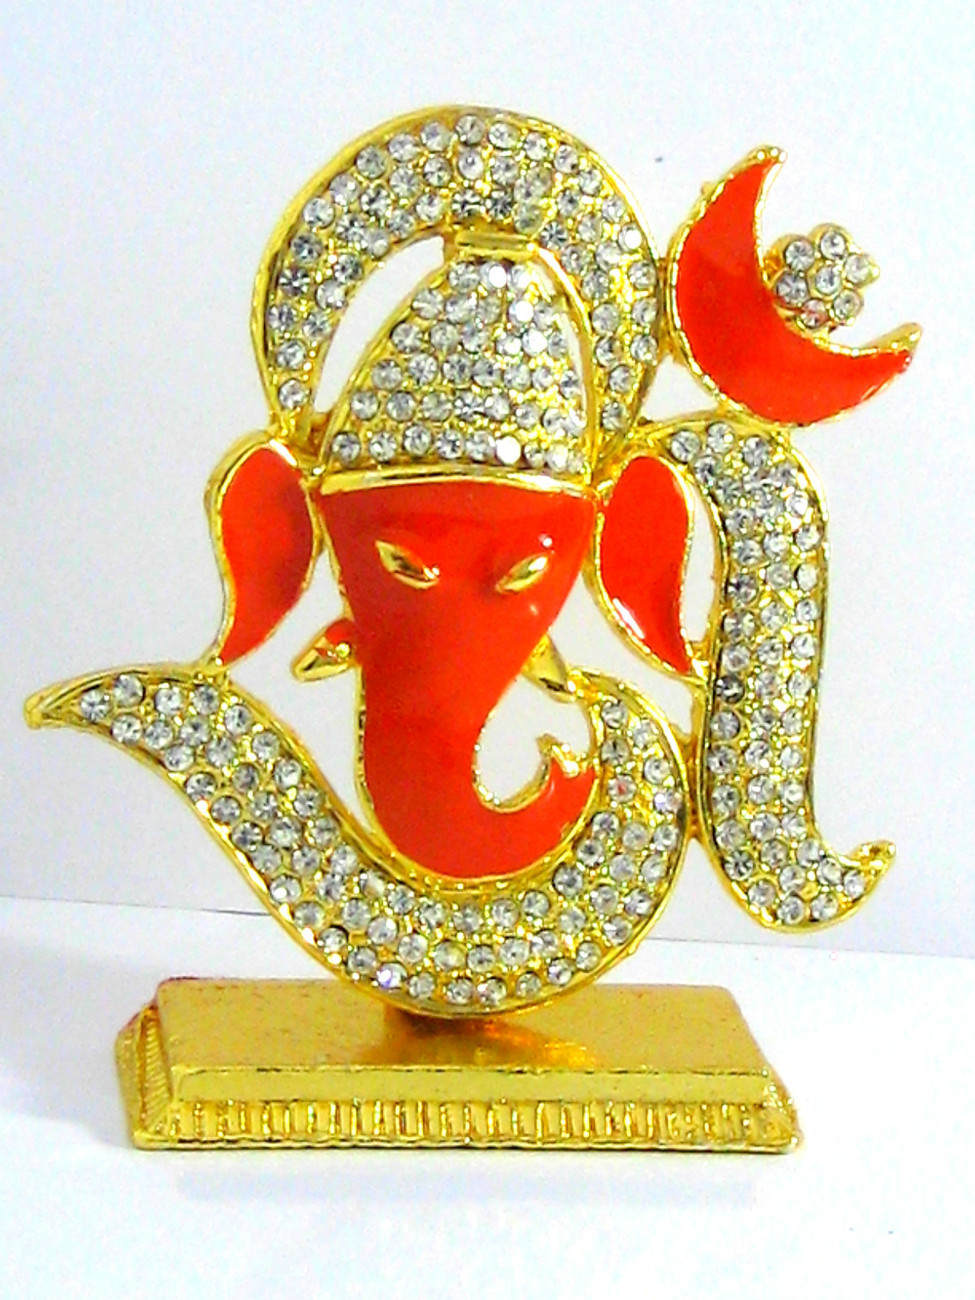 Primary image for Ganesha Crystal Idol Hindu Spiritual God, Remover of Obstacles  Made in India